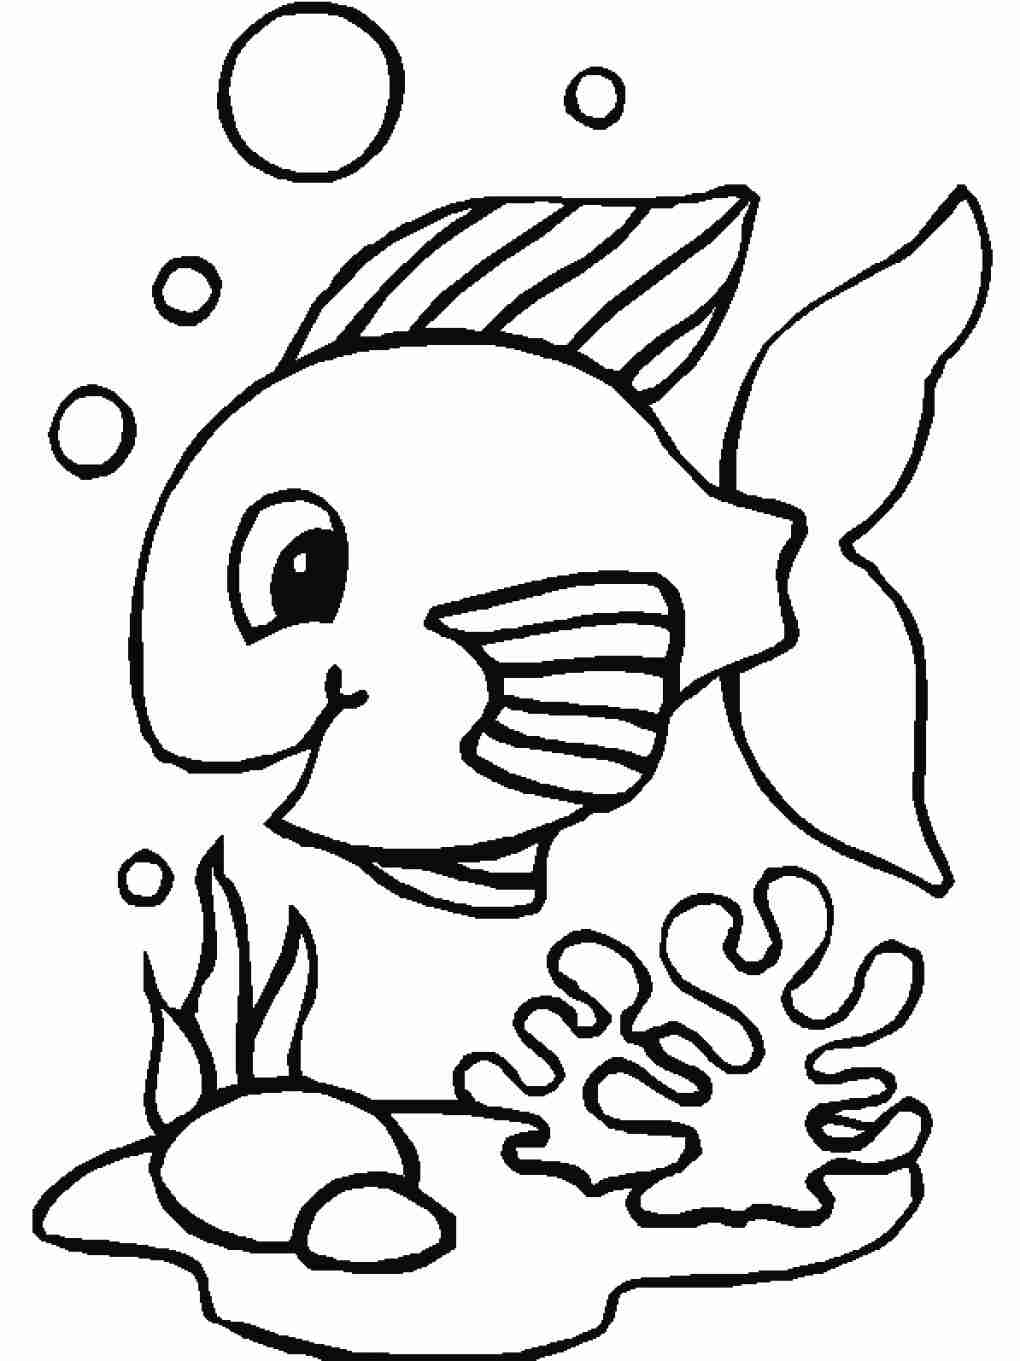 1020x1361 Fish Coloring Pages For Toddler Coloringstar Magnificent Cute